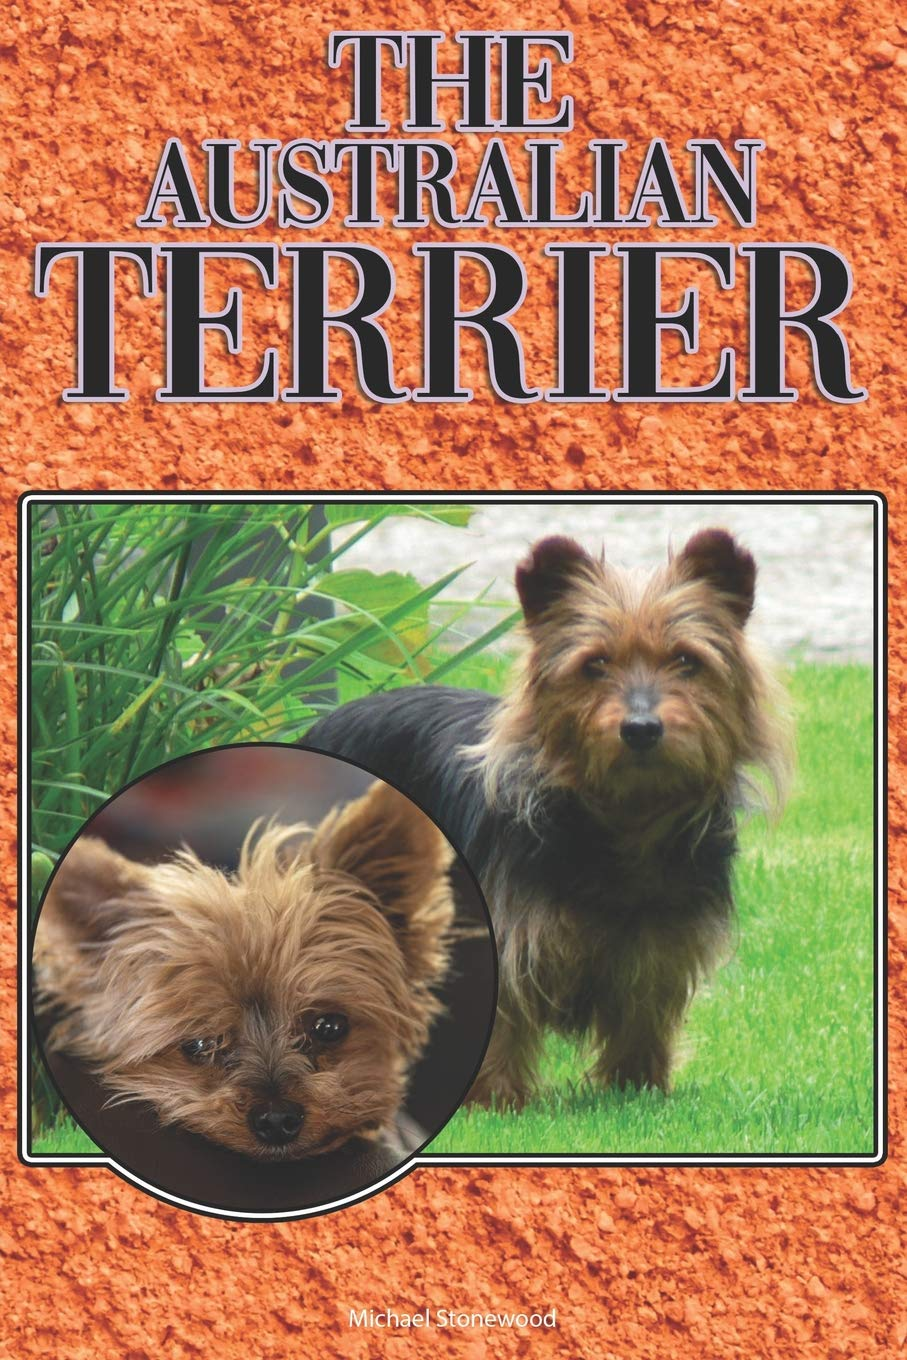 The Australian Terrier: A Complete and Comprehensive Beginners Guide to: Buying, Owning, Health, Grooming, Training…